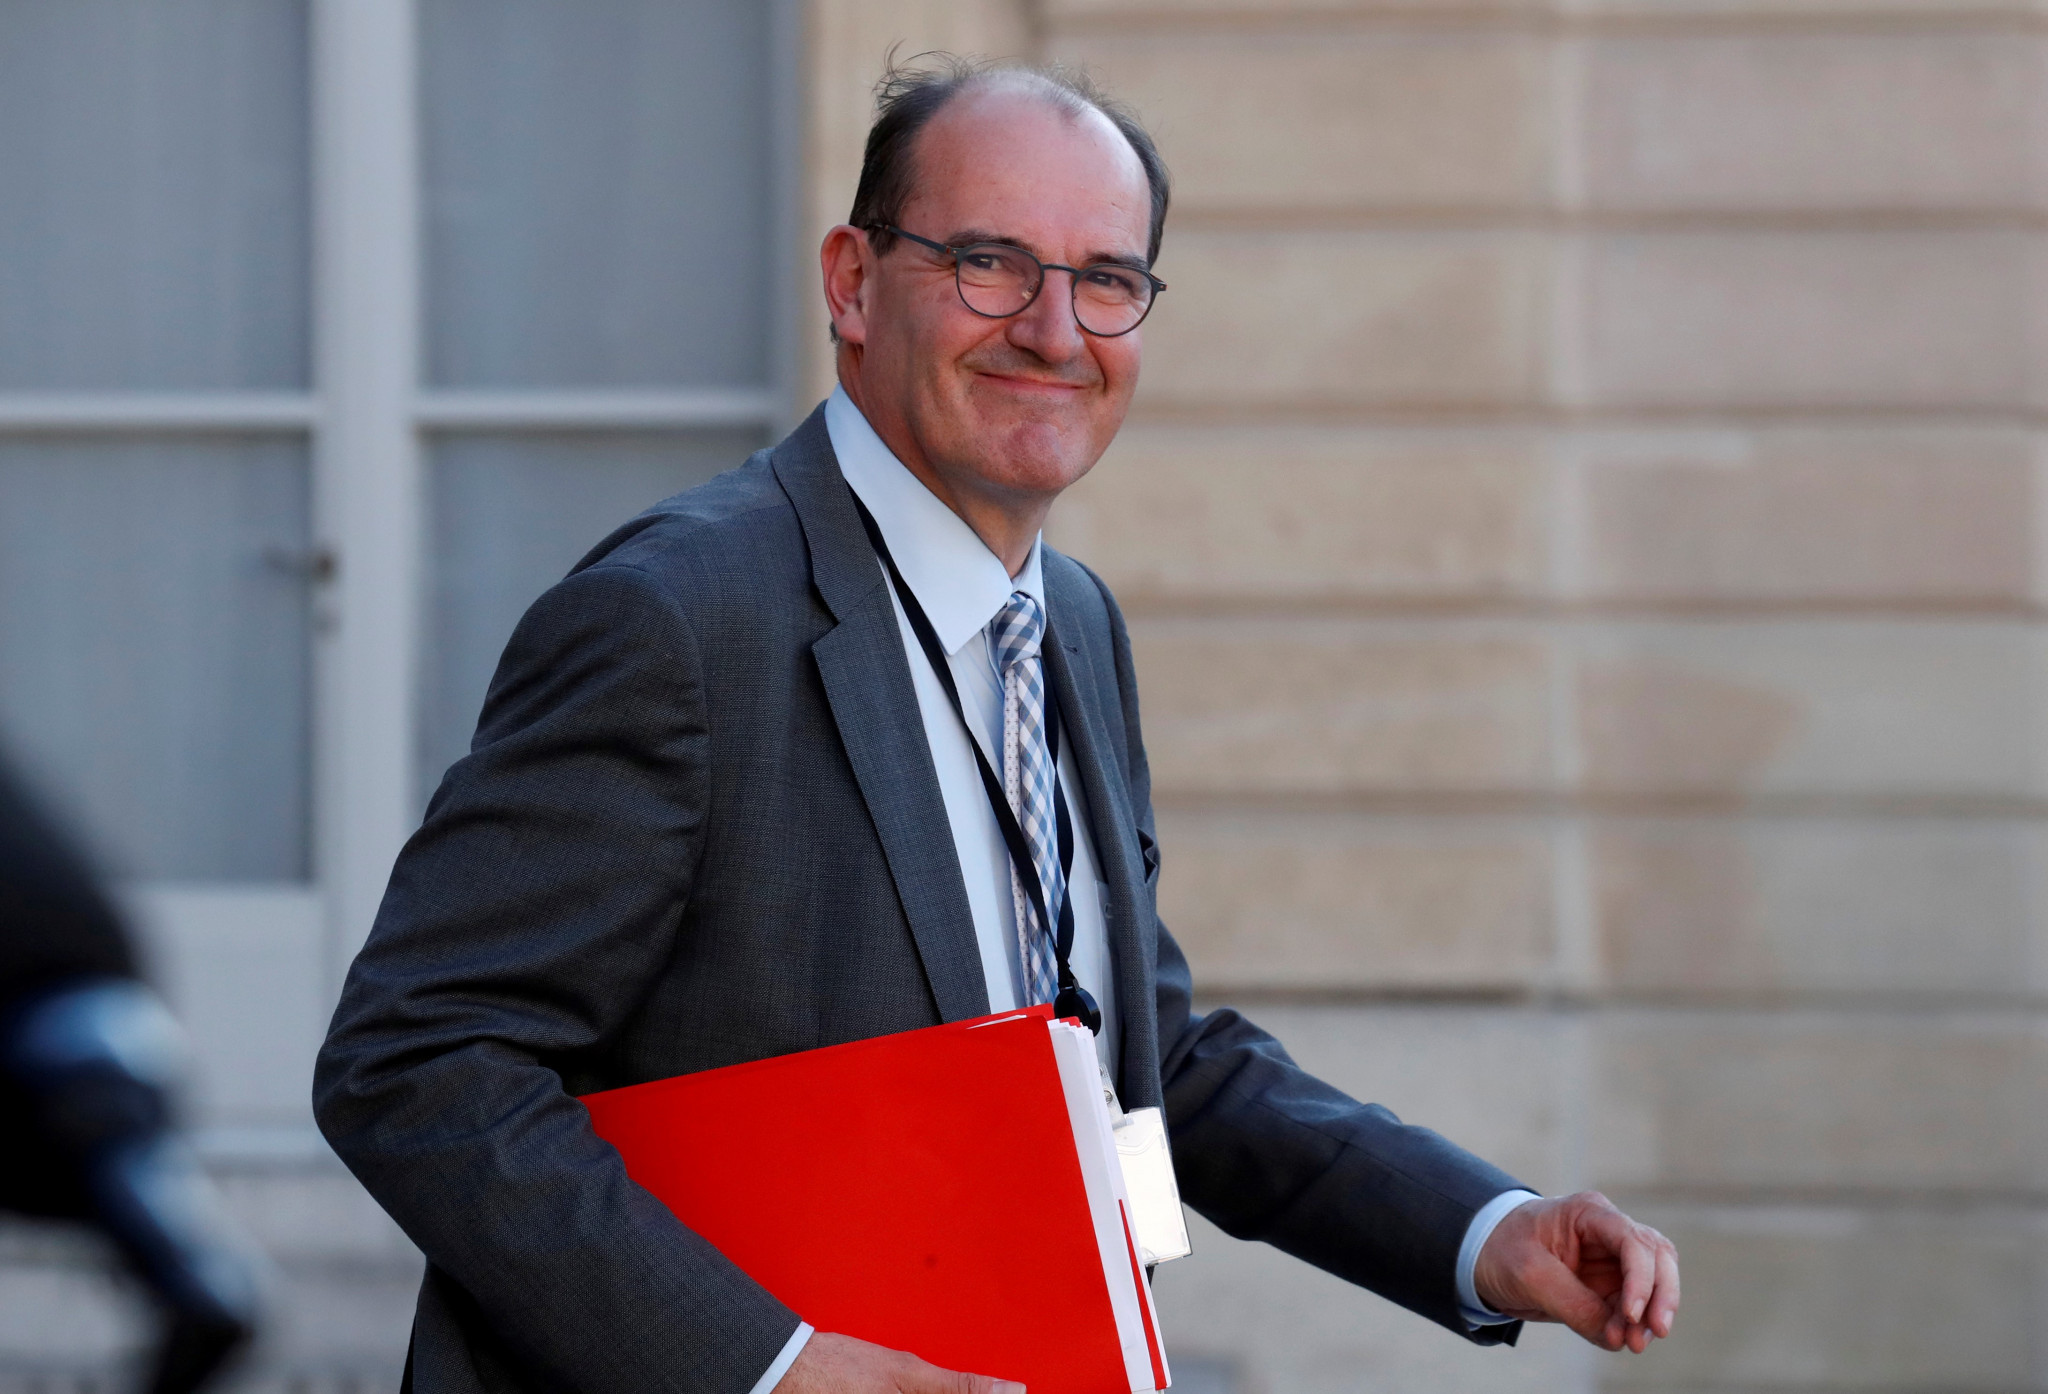 Castex returns to Paris 2024 interministerial role as France exits lockdown